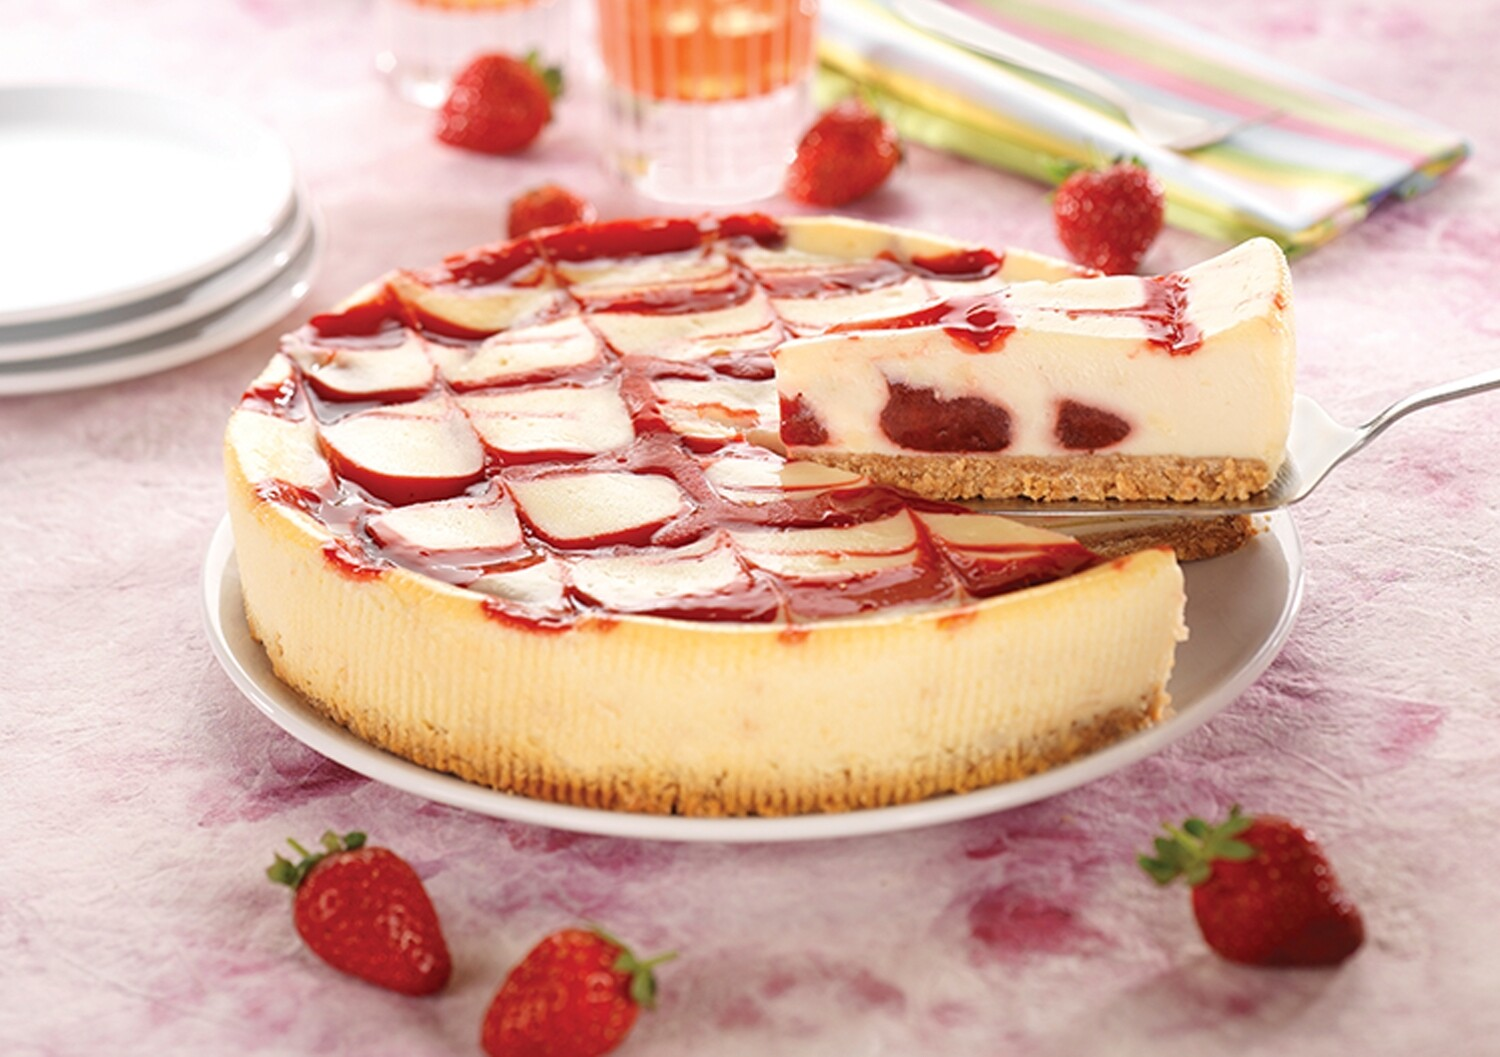 Strawberry & White Choc Cheesecake (12 Slices)